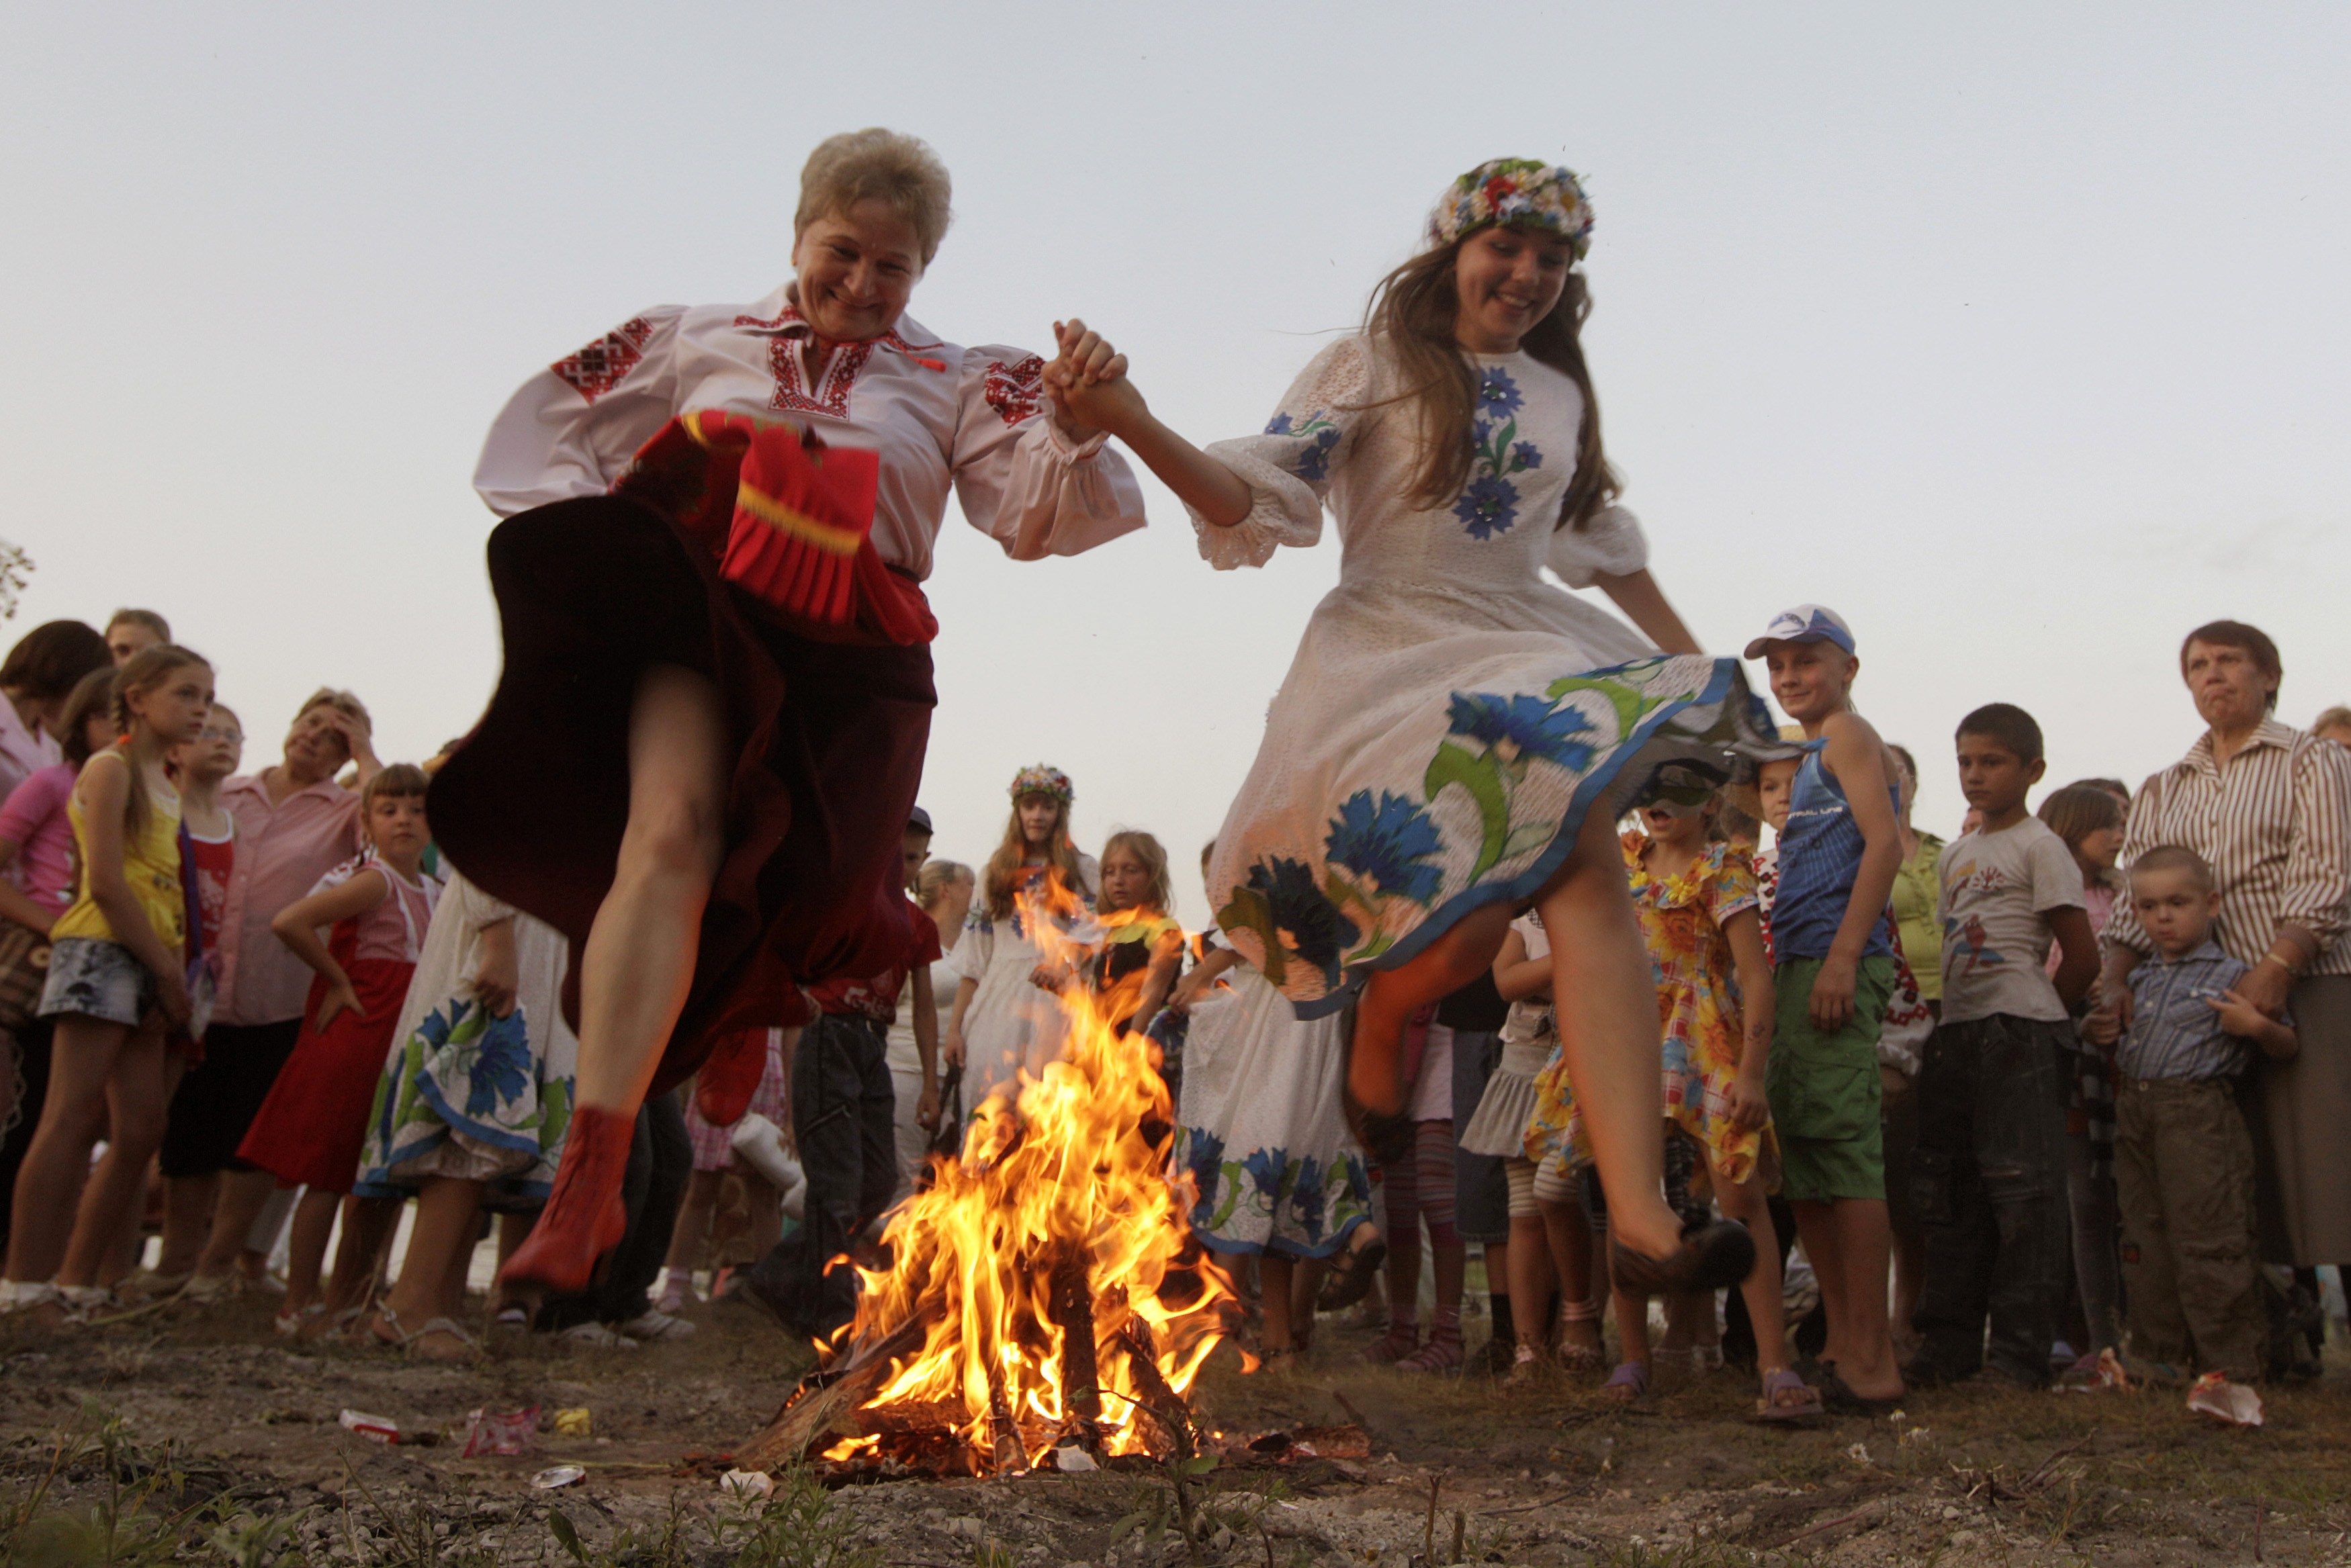 Women jump over a campfire during the Ivan Kupala festival in the town of Turov, some 167 miles south of Minsk, Russia on July 6, 2012.